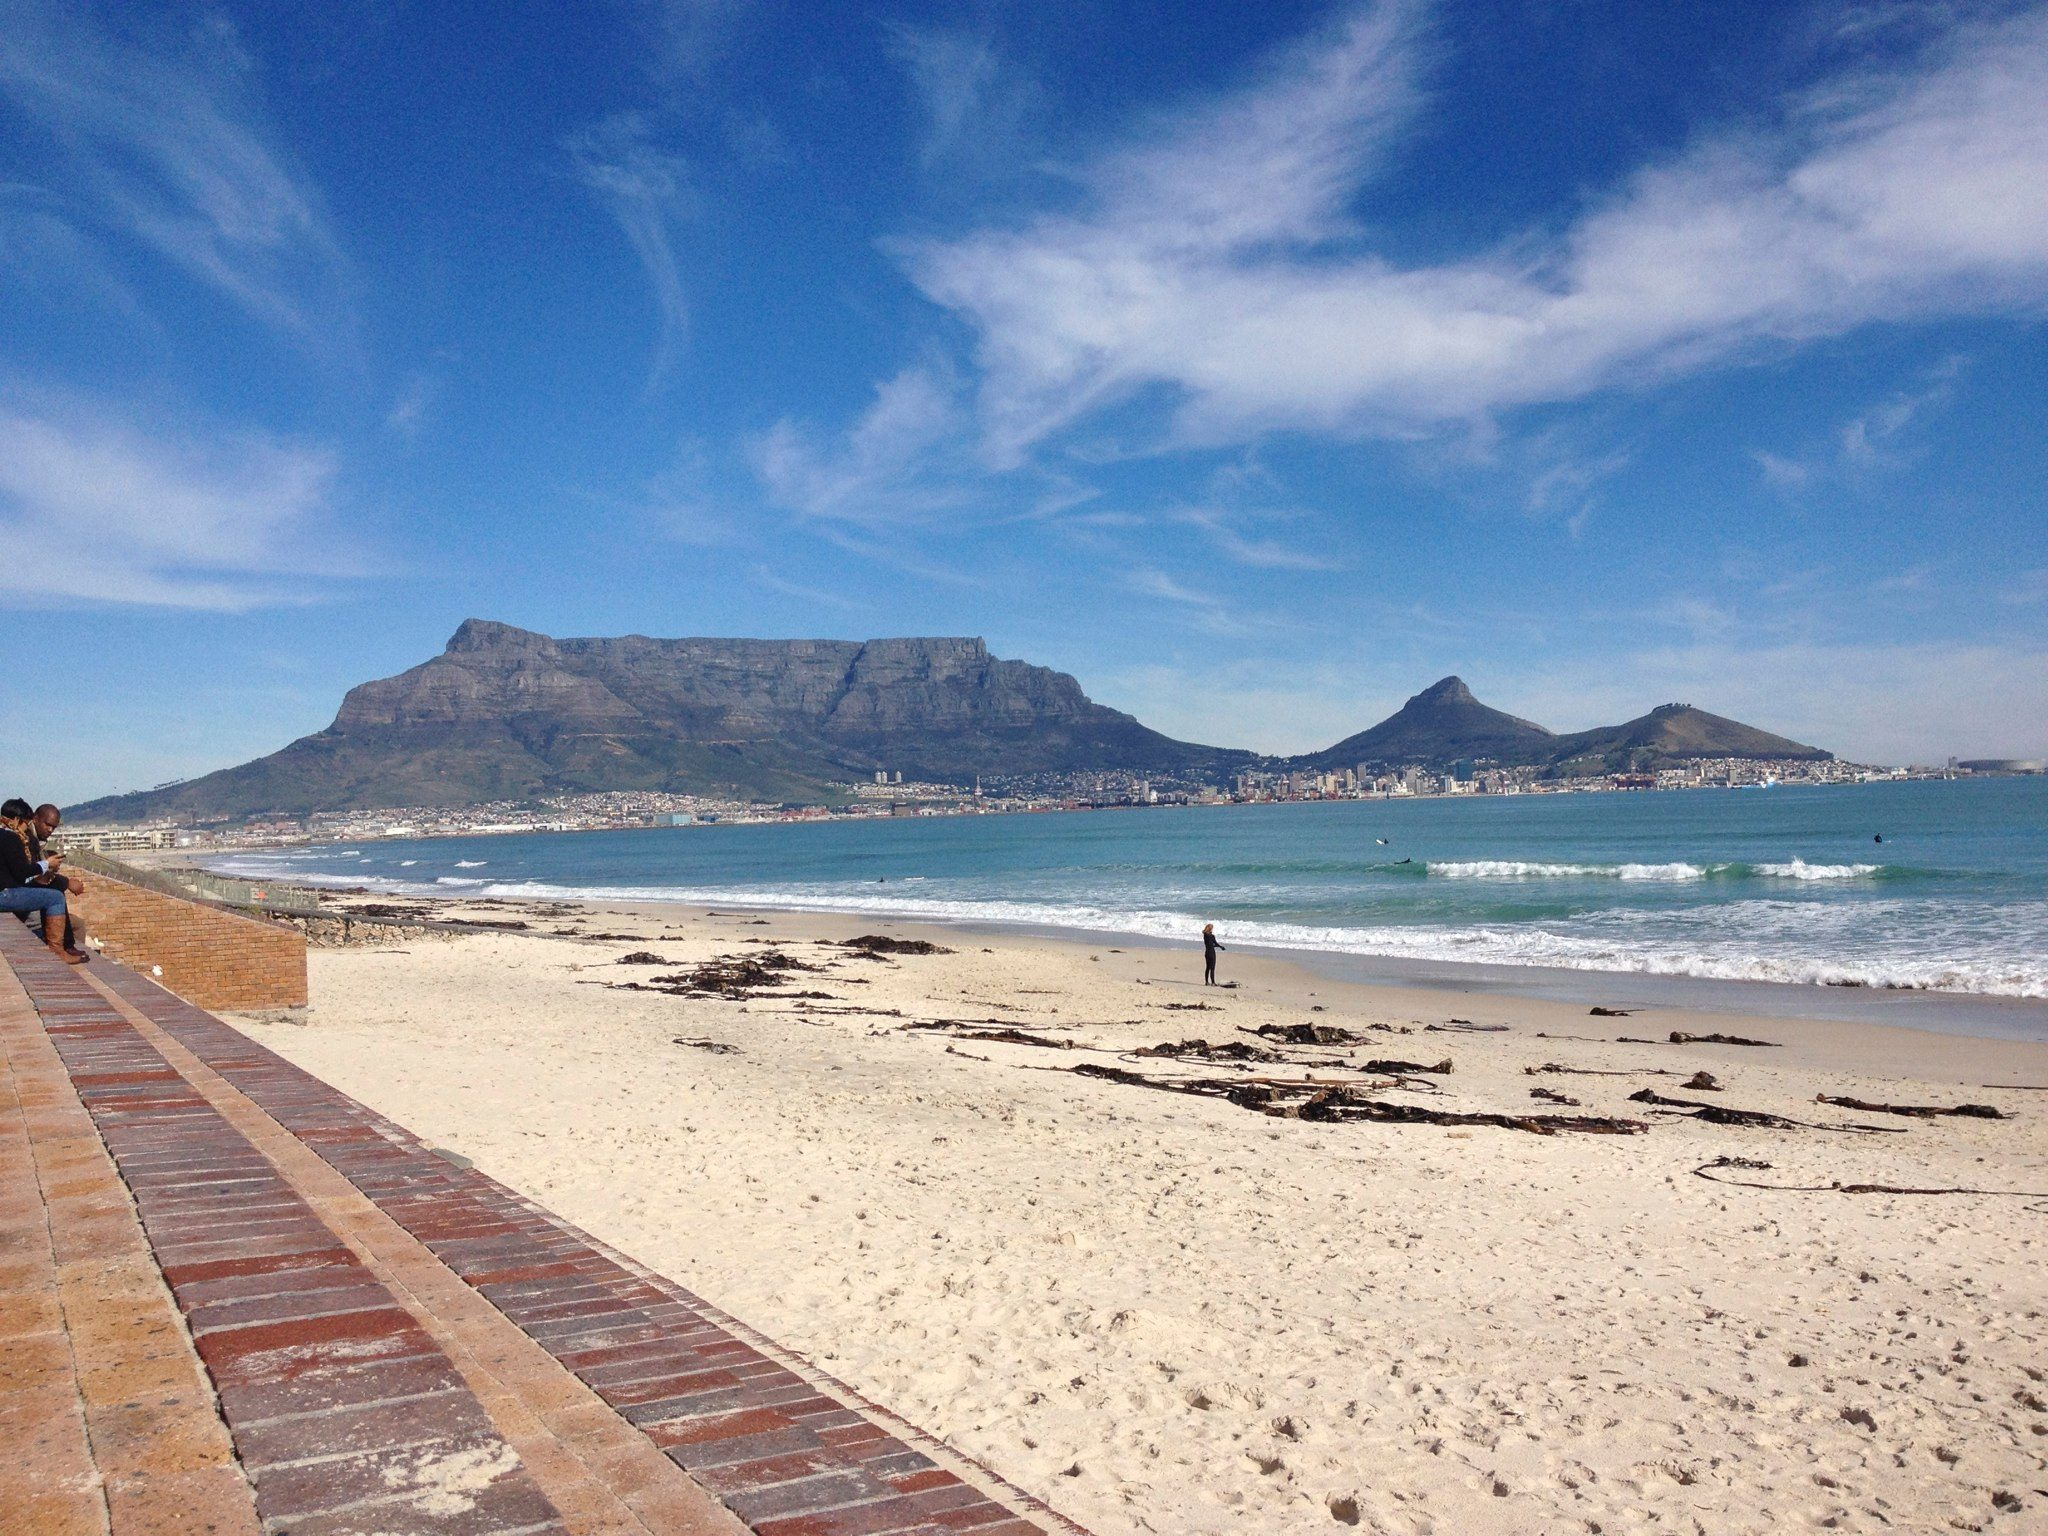 A stunning view of one of the 7 wonders of the world: Table Mountain in Cape Town.